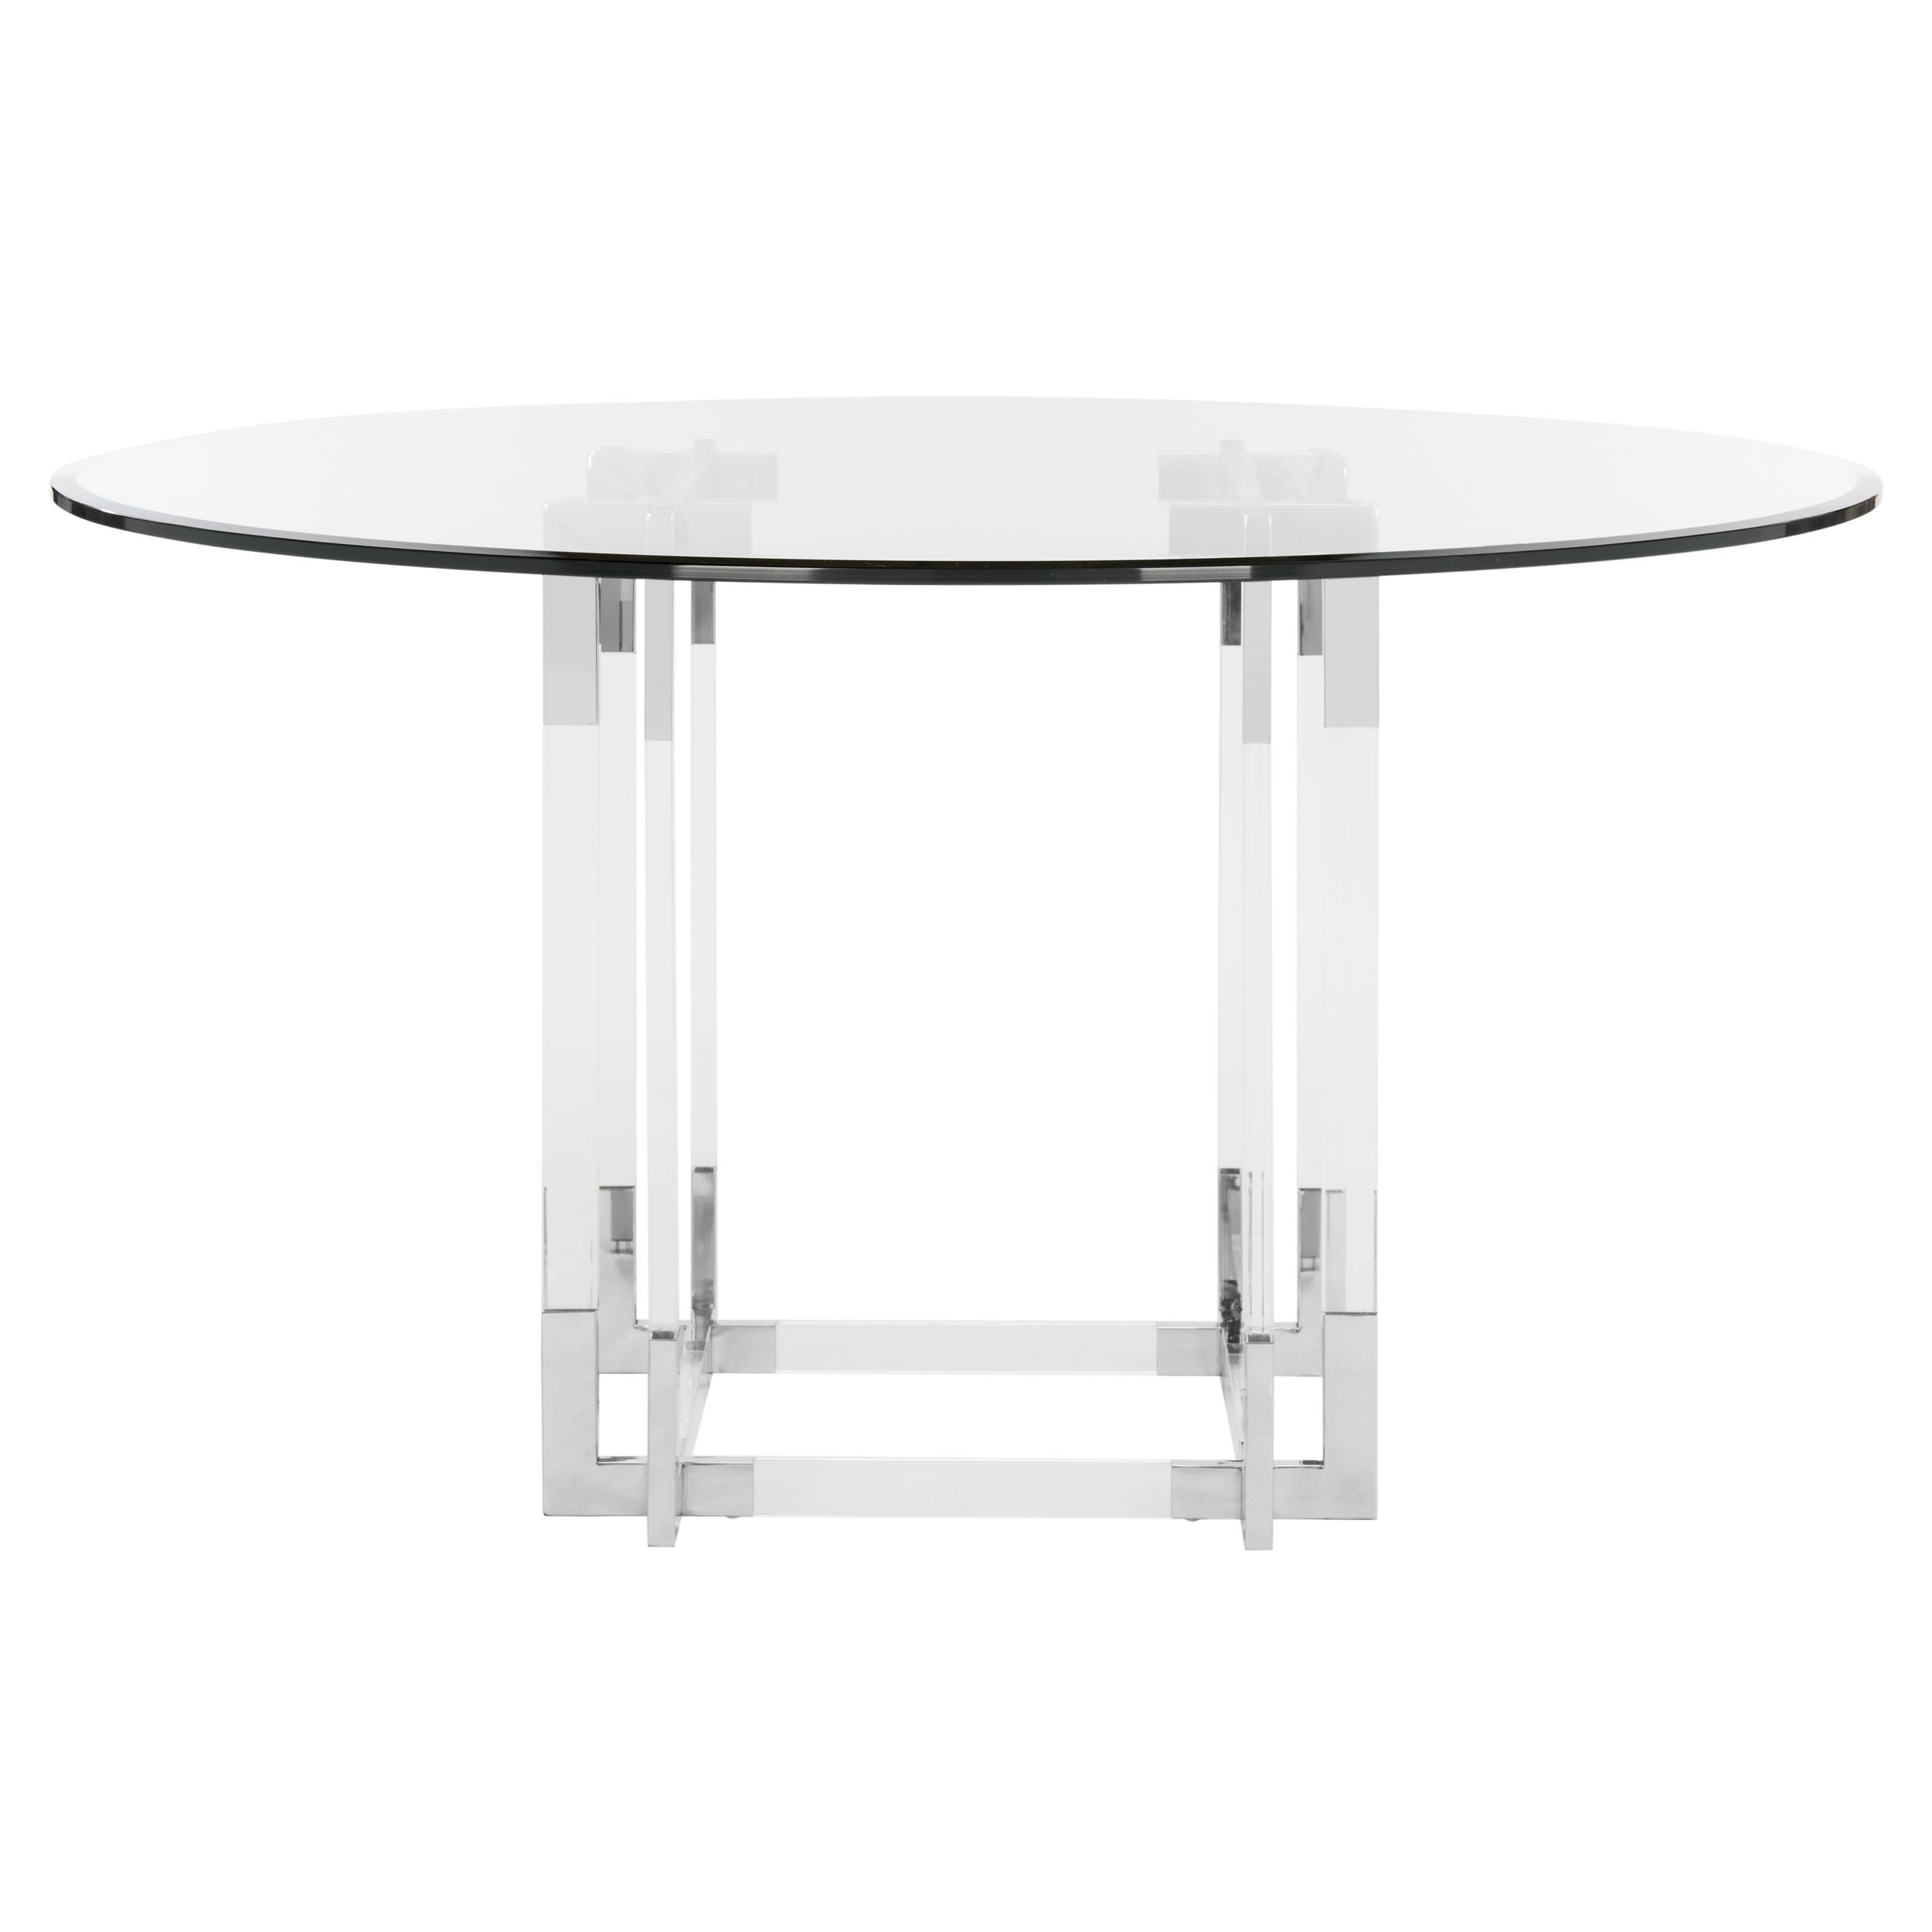 safavieh couture high line collection koryn acrylic silver dining table   free shipping today   overstock com   21174455 safavieh couture high line collection koryn acrylic silver dining      rh   overstock com